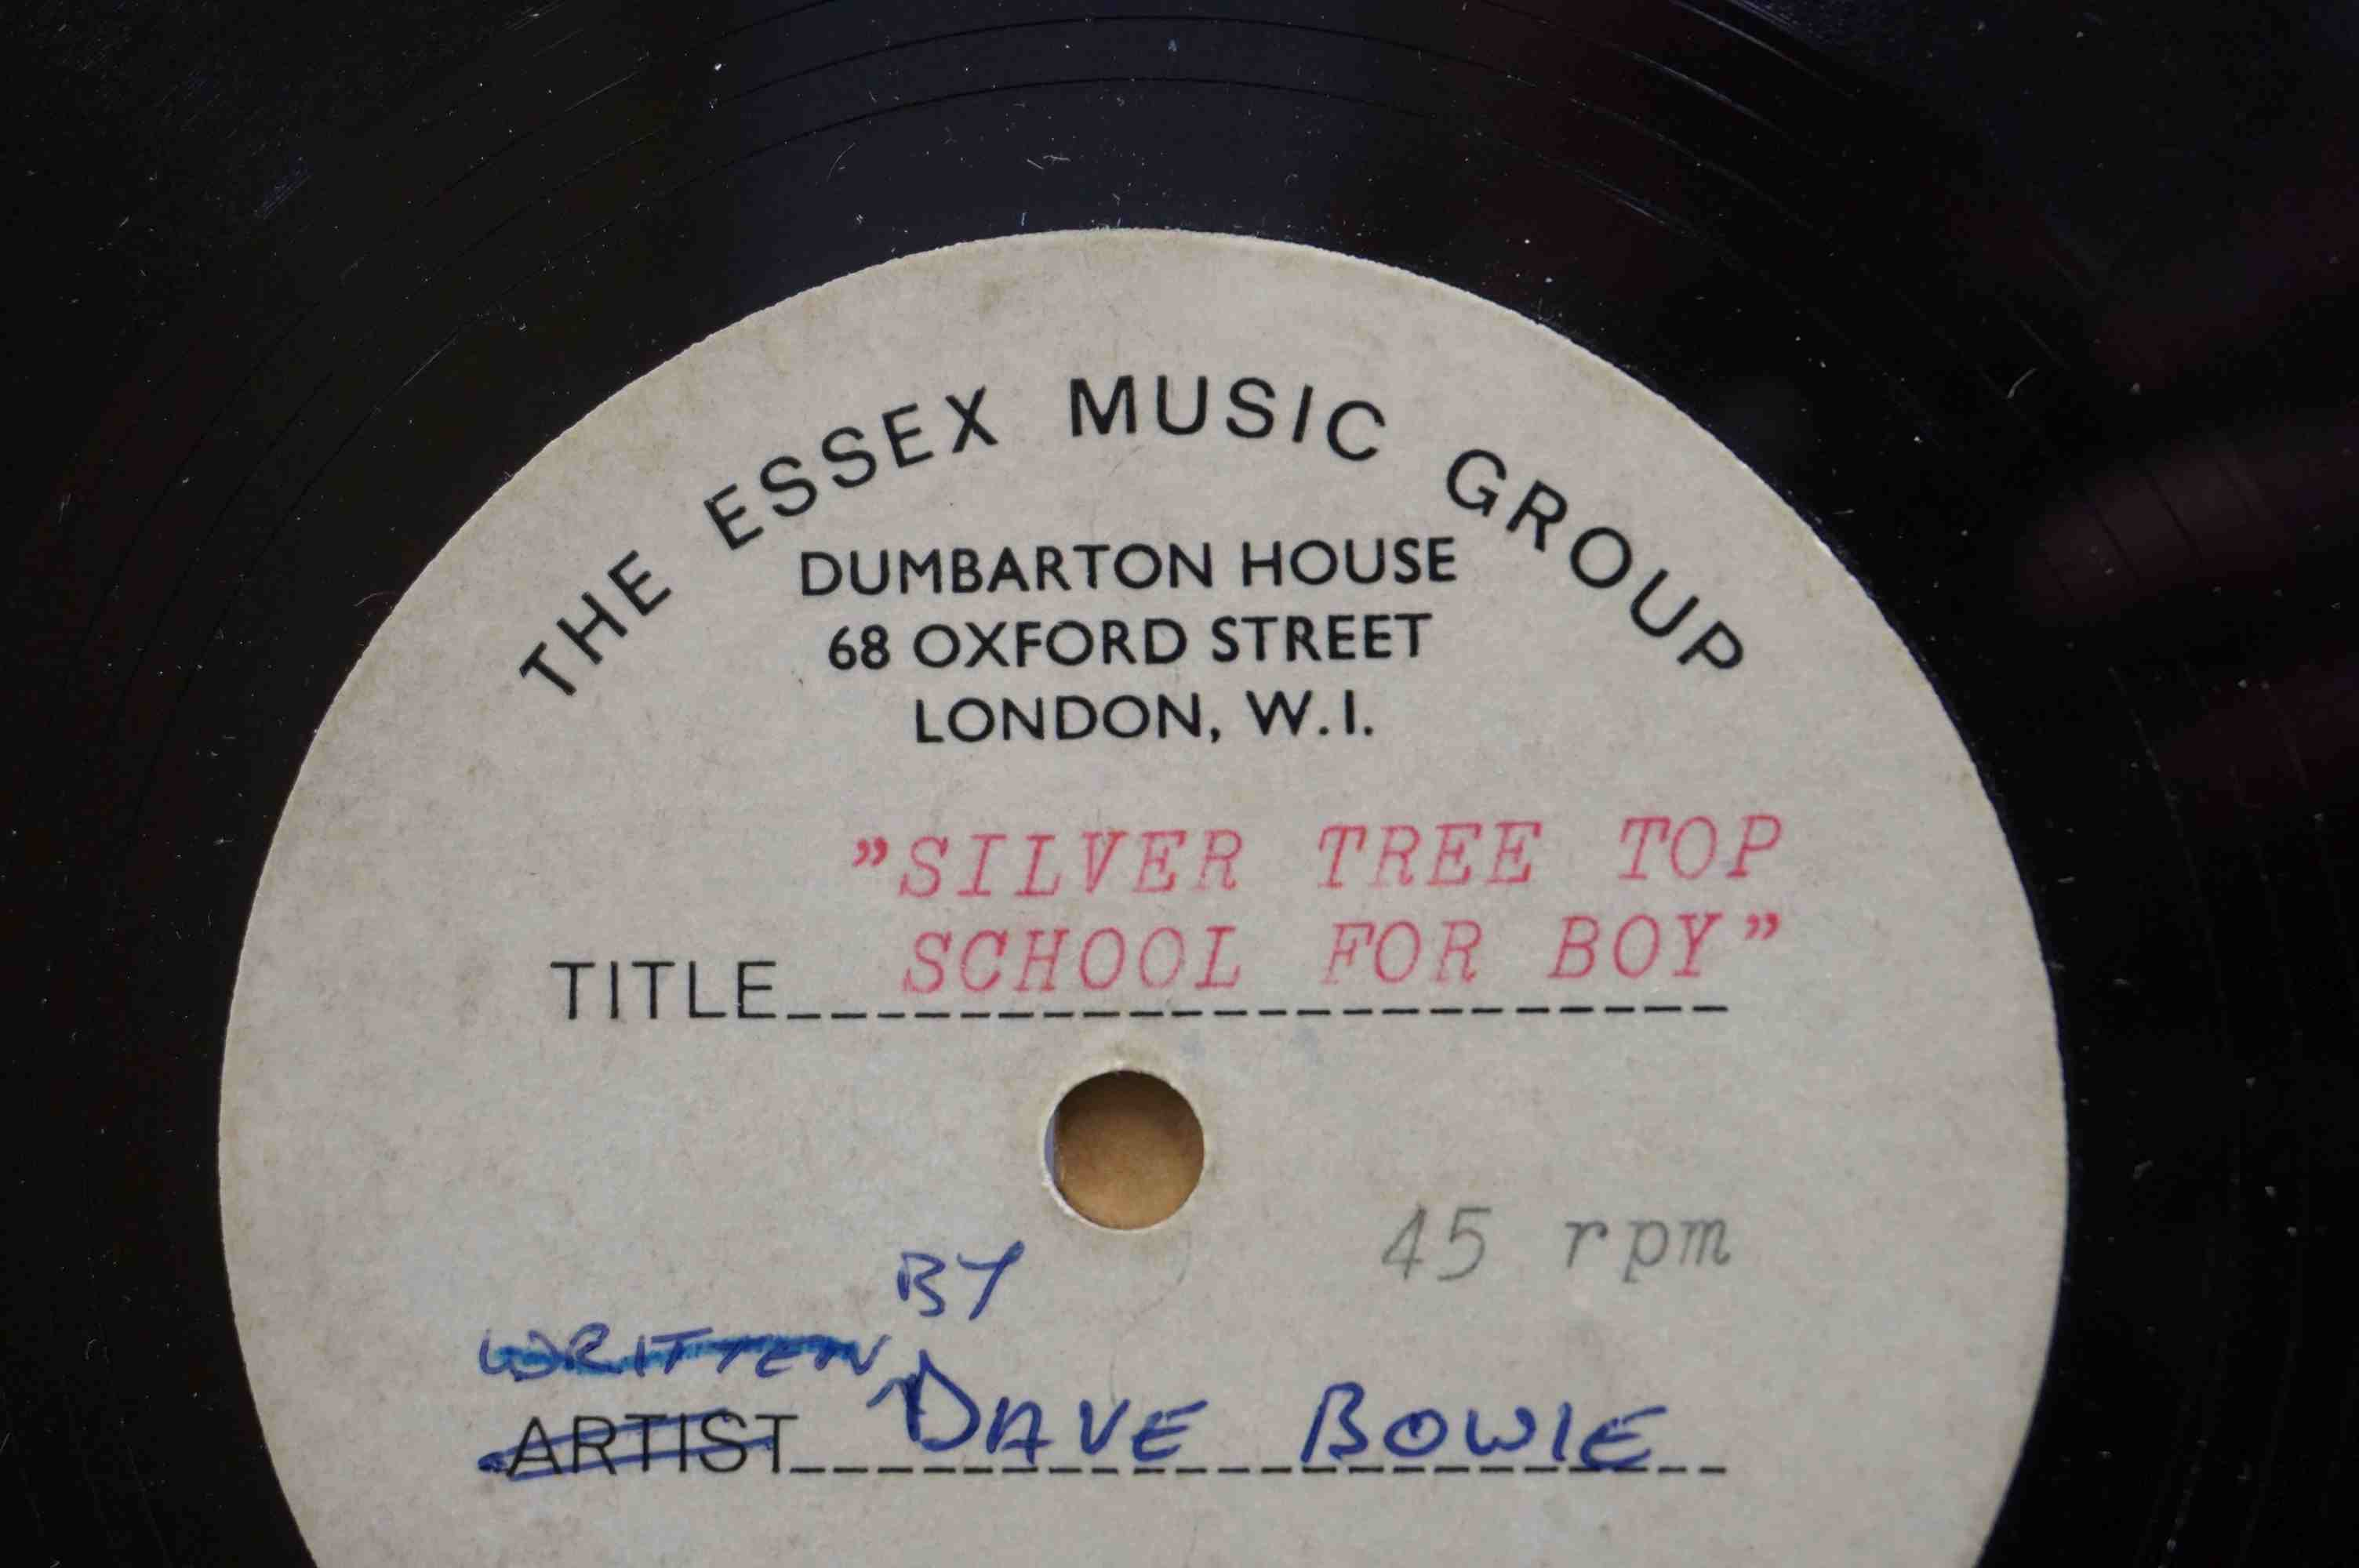 Vinyl - David Bowie - A Single sided acetate demo for the song ' Silver Tree Top School For - Image 4 of 5